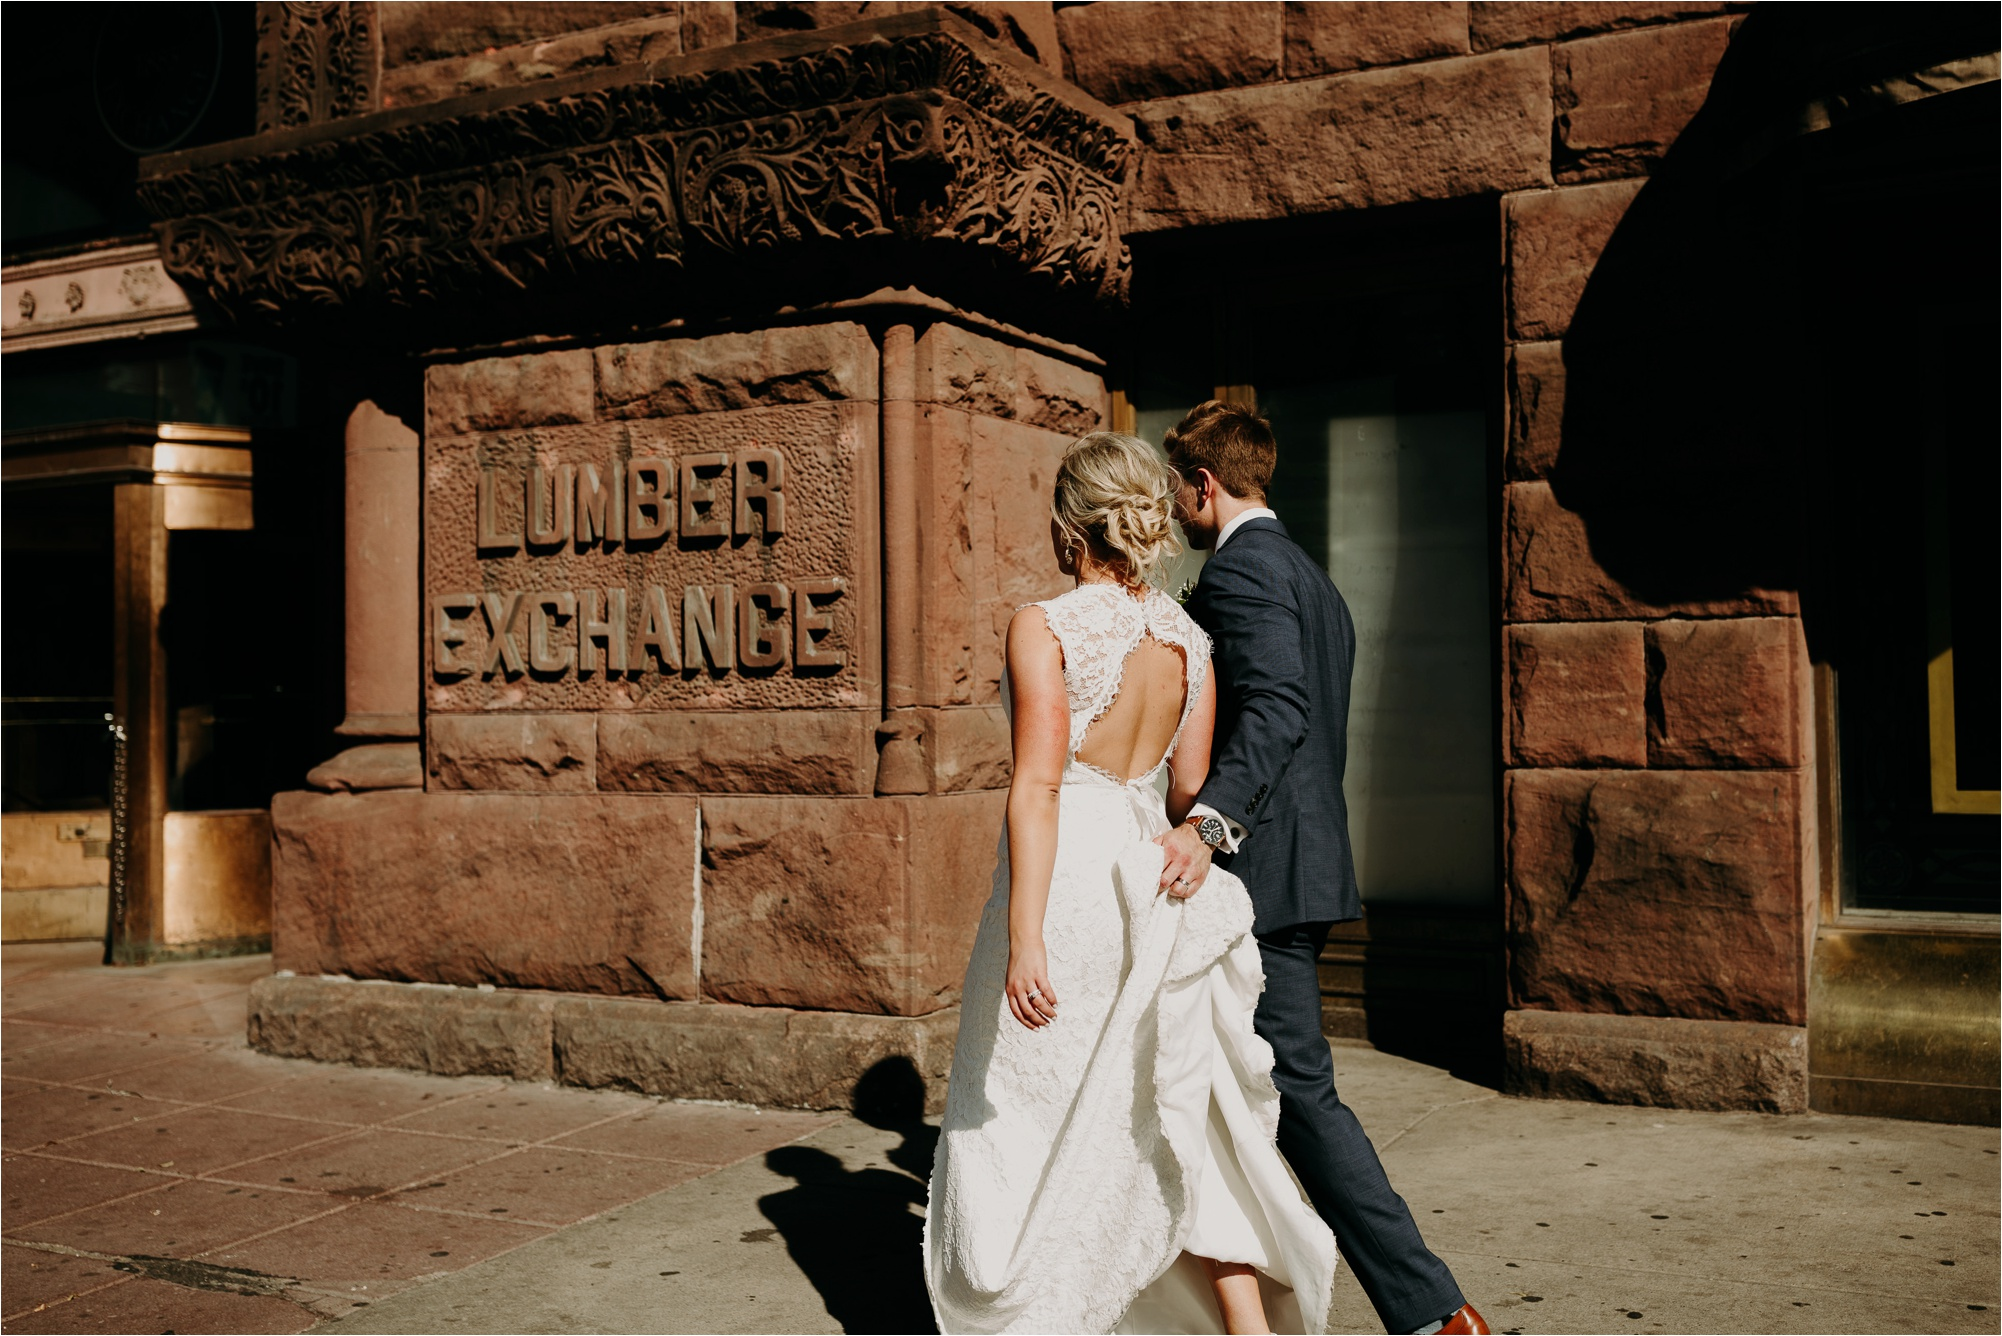 lumber exchange wedding photographer minneapolis minnesota